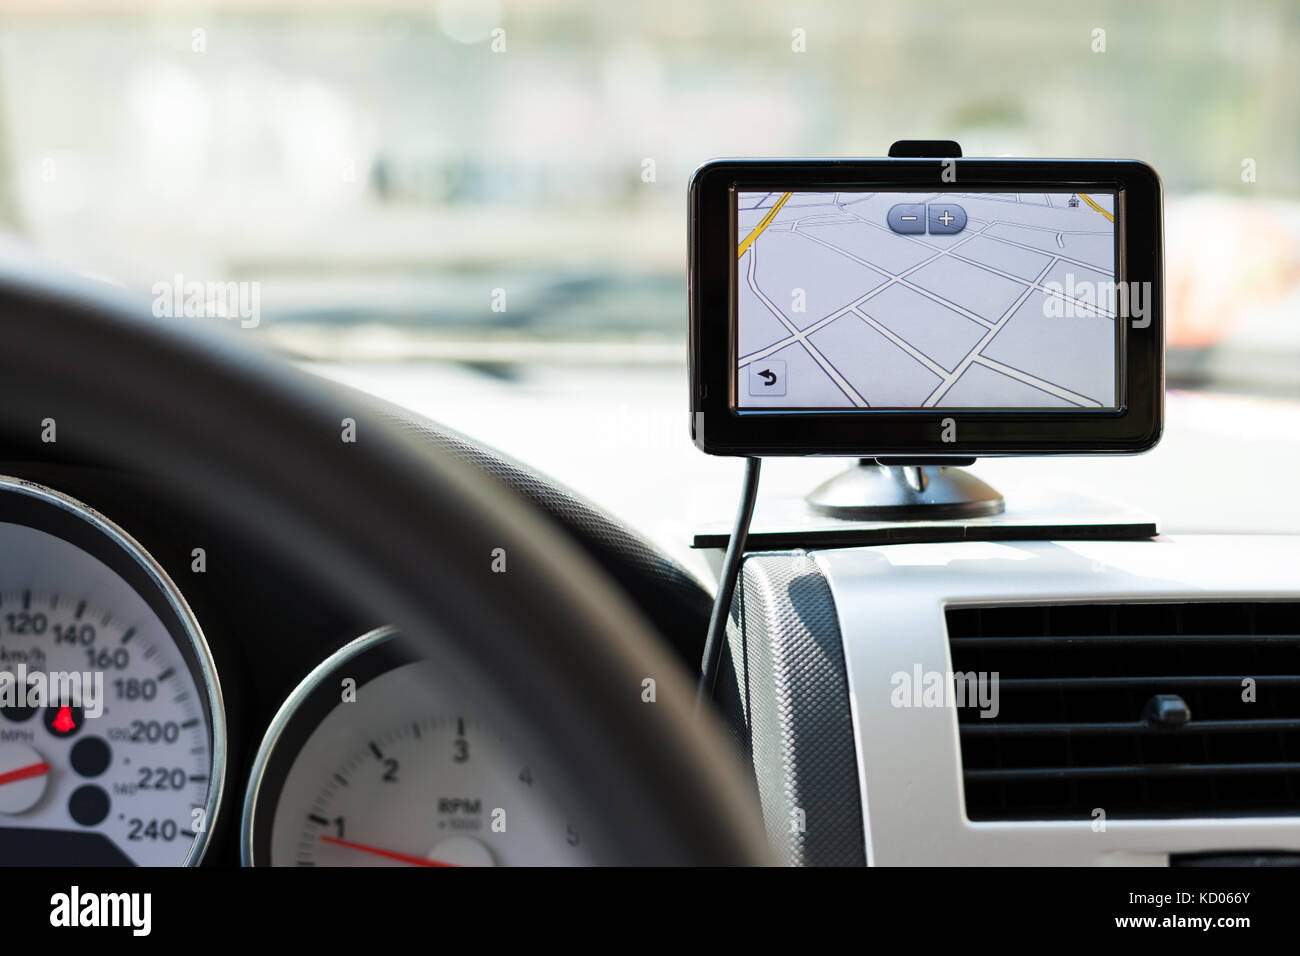 GPS navigation system in a traveling car - Stock Image